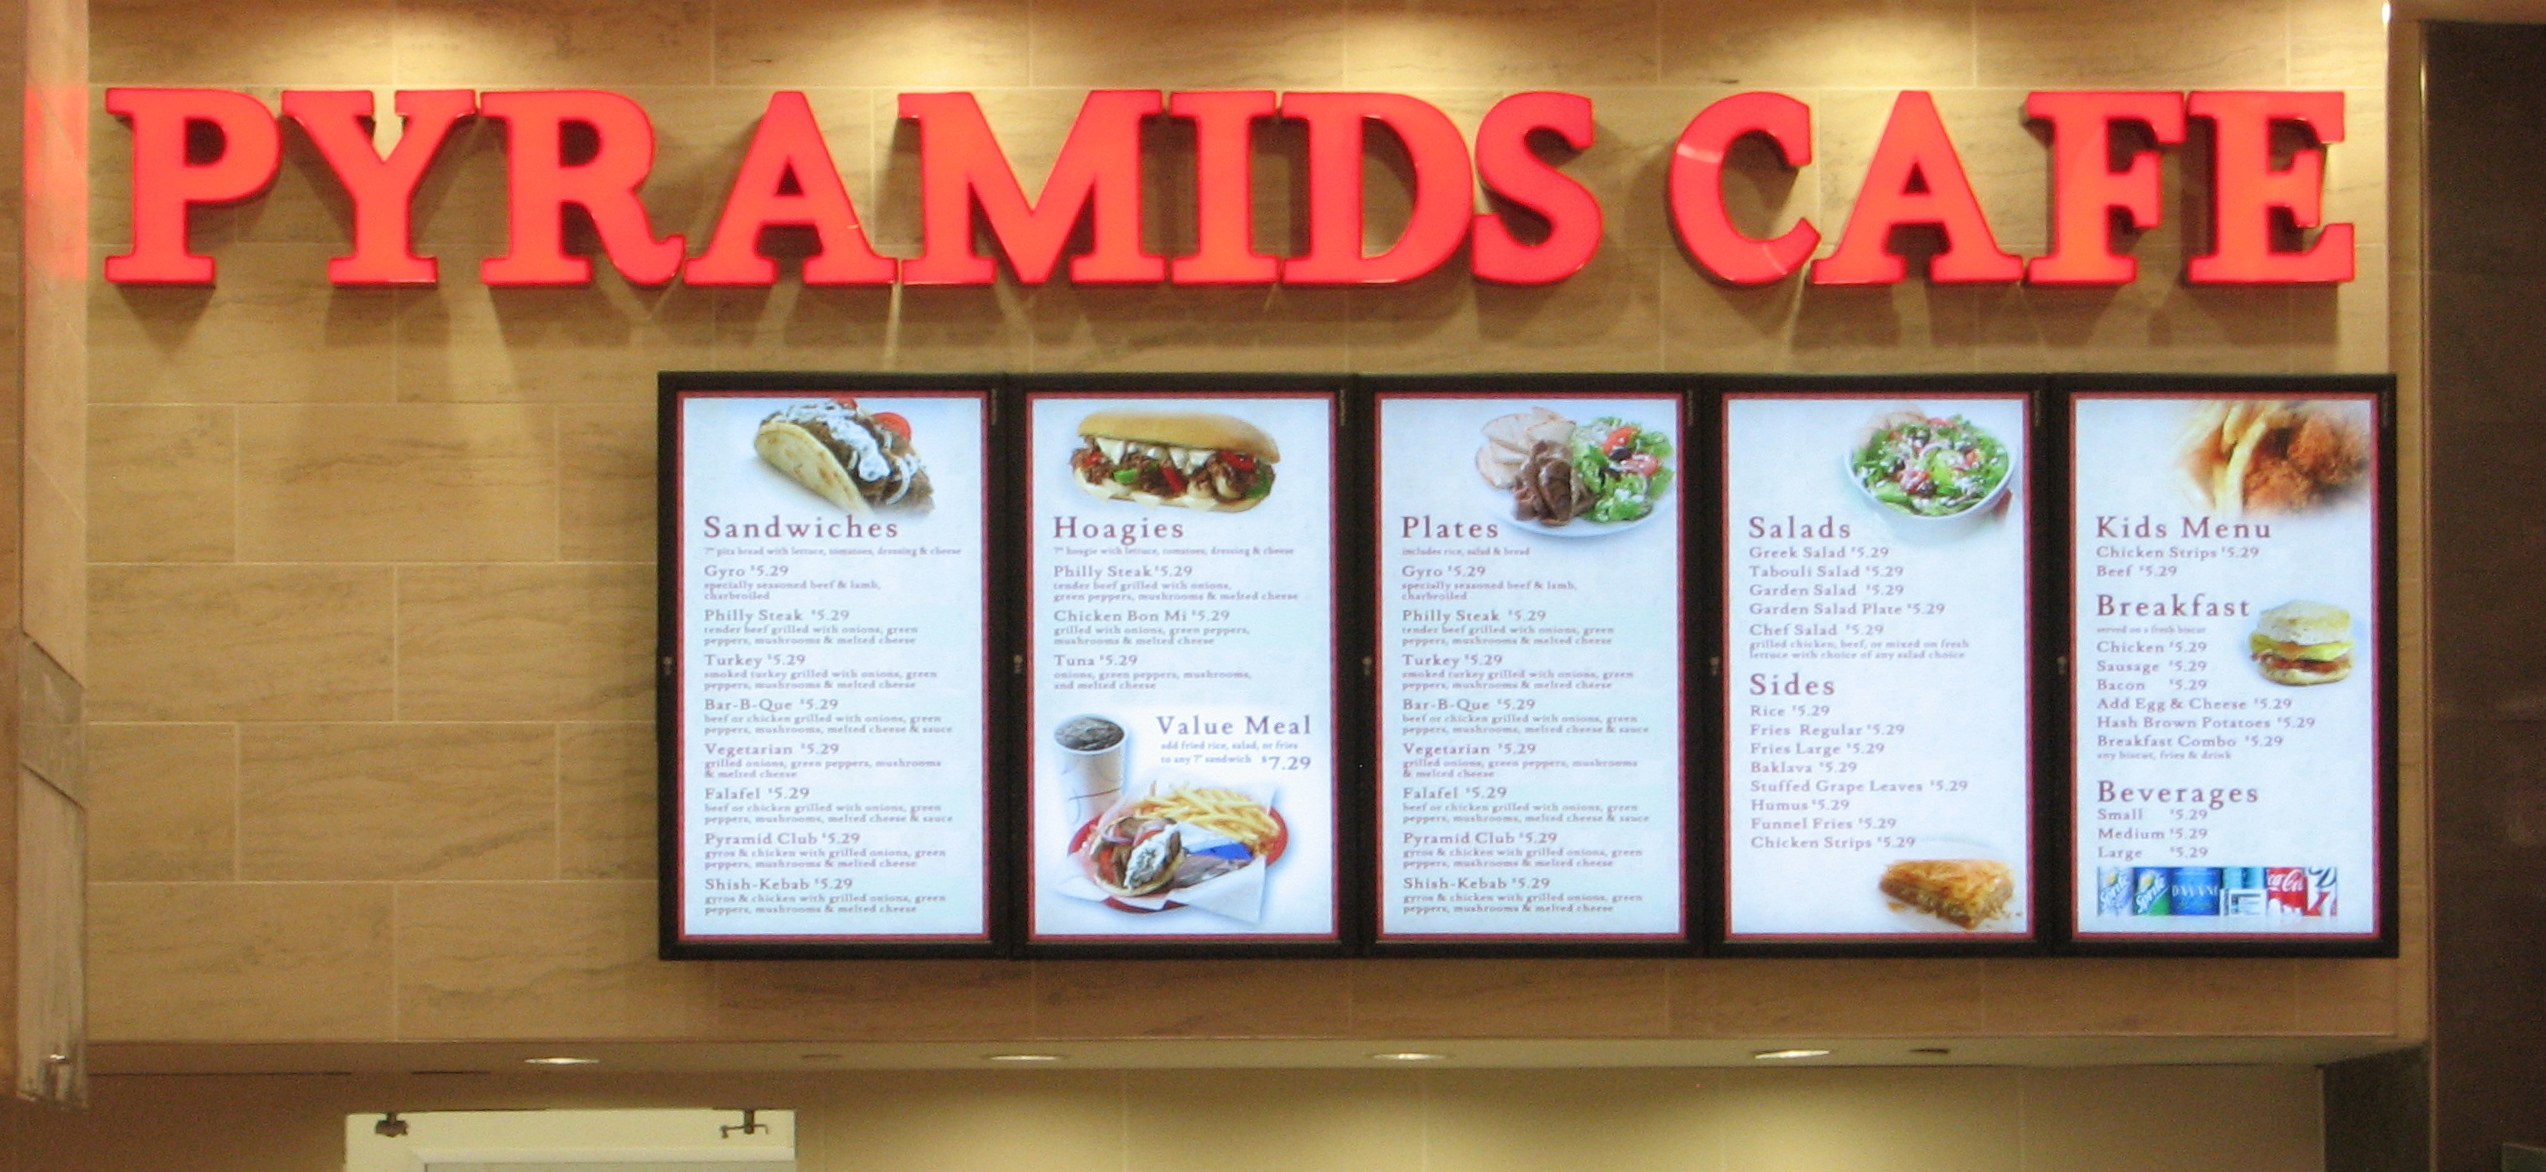 osm solutions designs & installs 5-panel digital menu board system